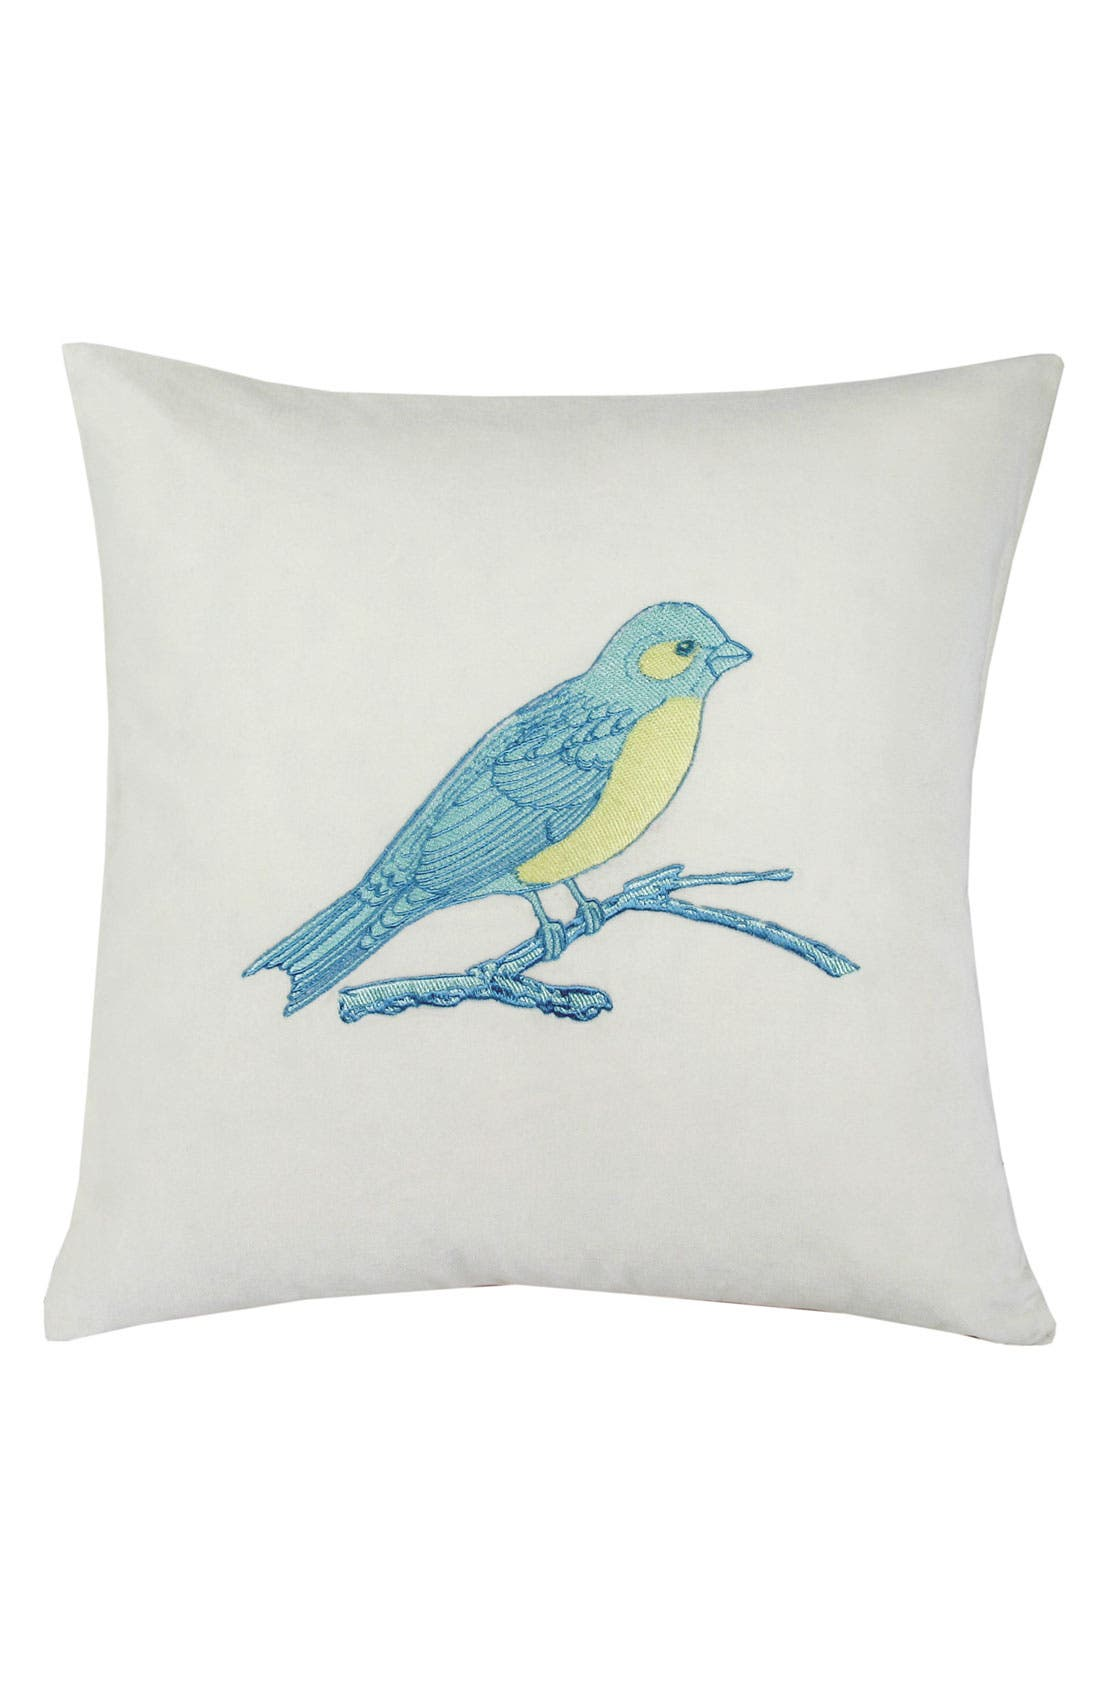 Alternate Image 1 Selected - Blissliving Home 'Kirby' Pillow (Online Only)